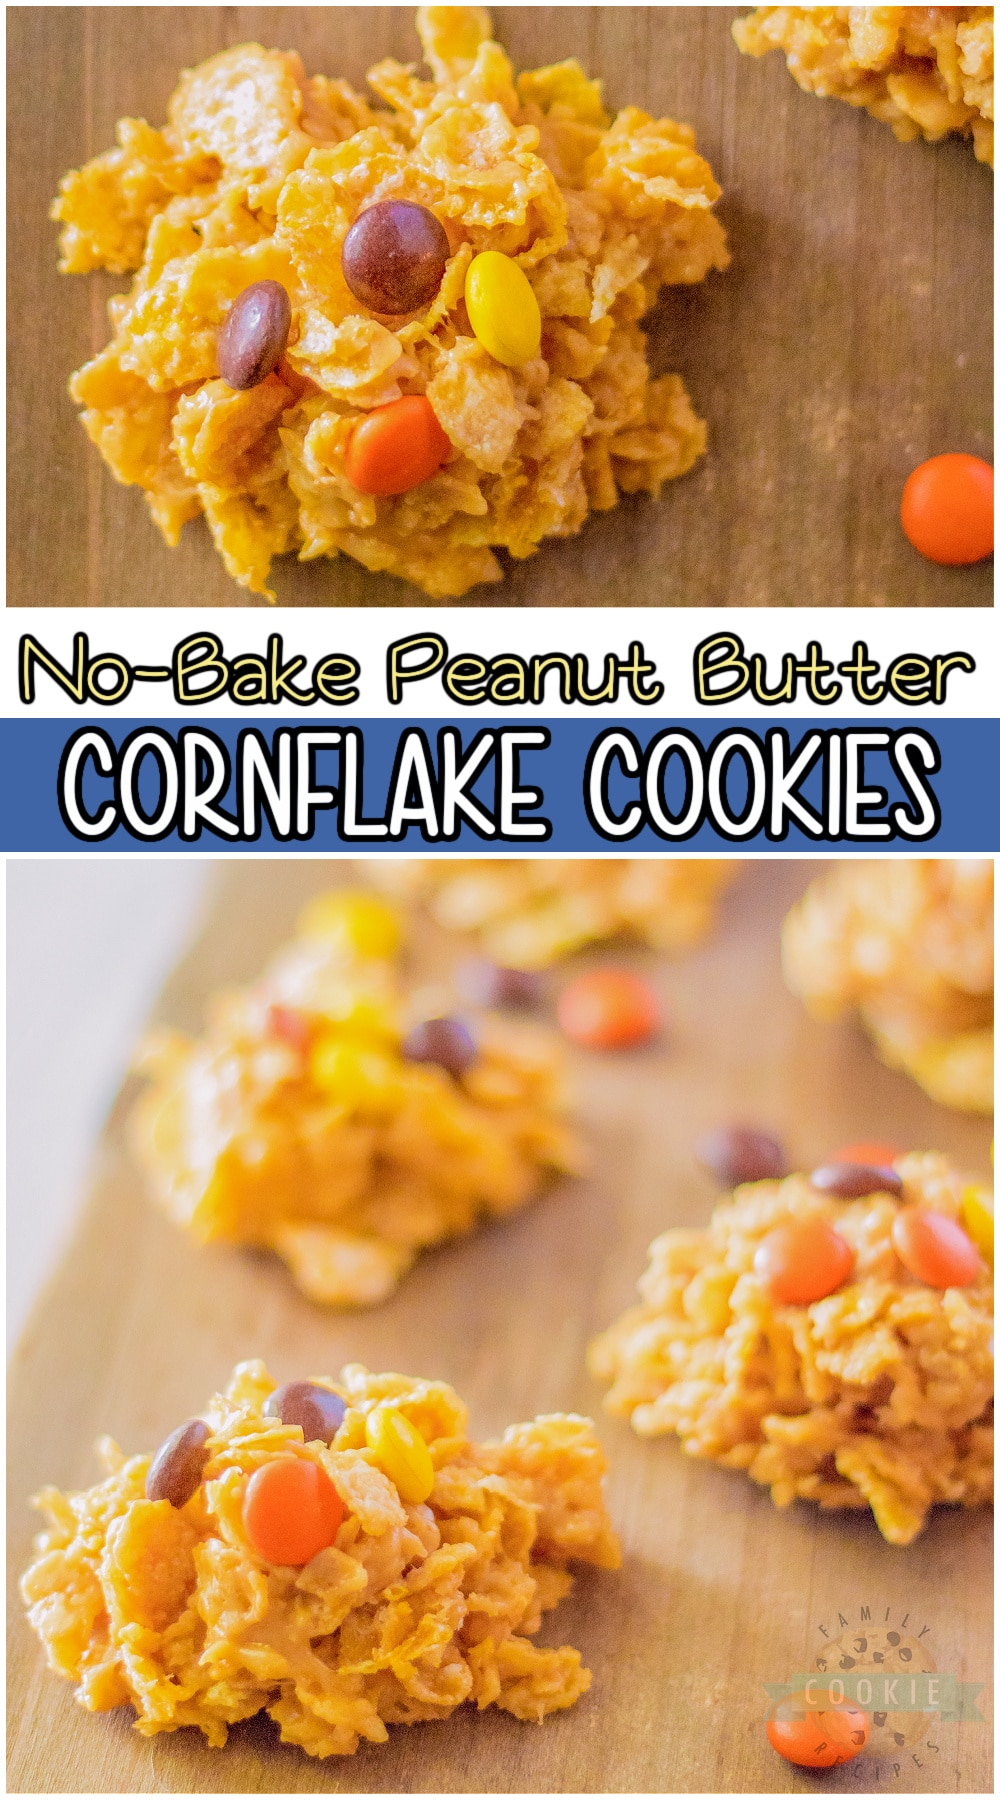 No bake peanut butter cornflake cookies made with just 5 ingredients & done in minutes! Peanut butter, cornflake cereal, sugar and Reese's Pieces come together in a fun & tasty no-bake cookie recipe. #nobake #peanutbutter #cookies #Reeses #easyrecipe from FAMILY COOKIE RECIPES via @buttergirls